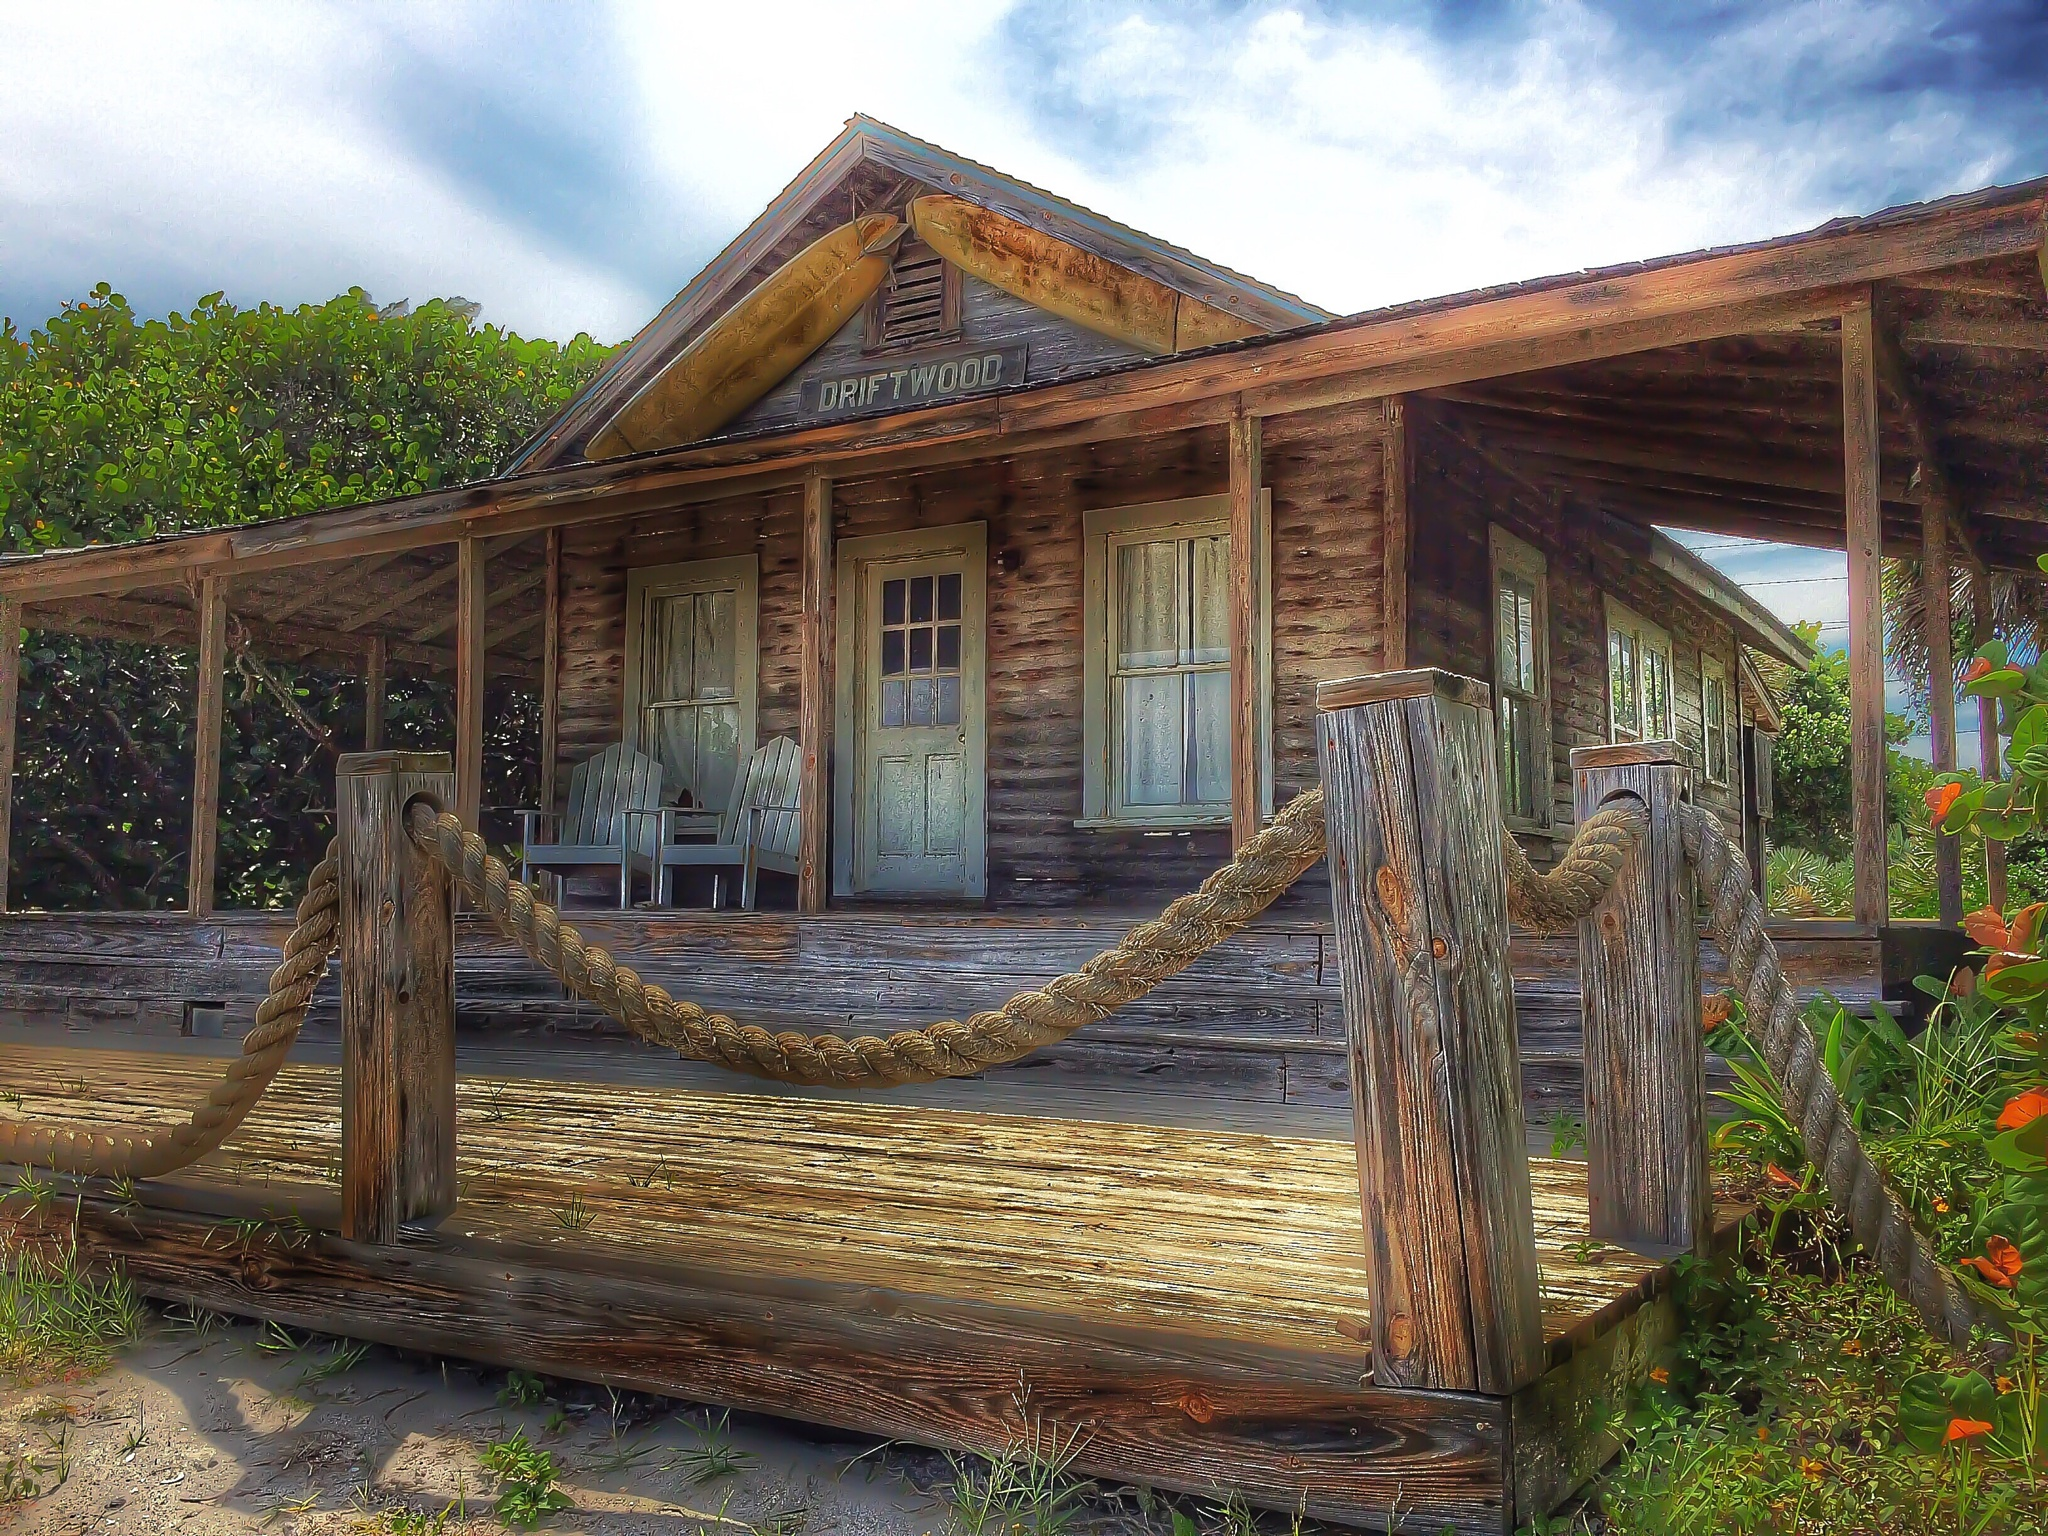 Driftwood cottage by Steve Falletti